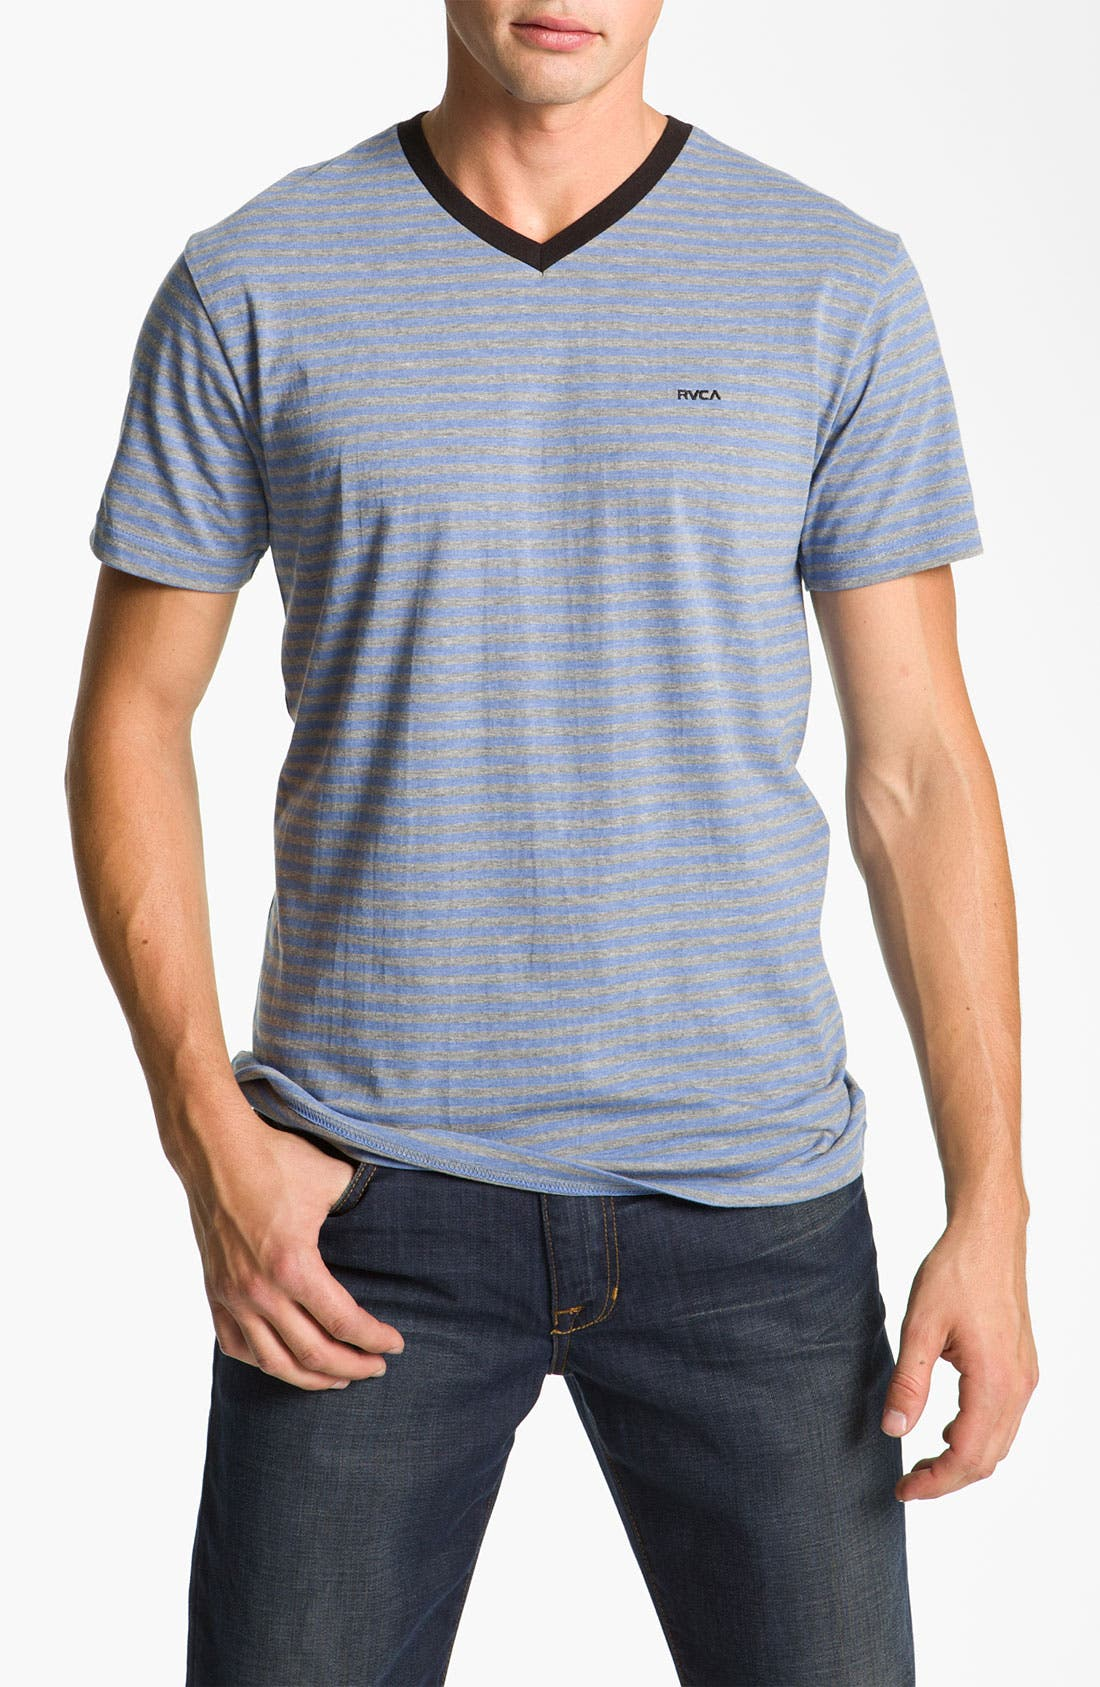 Alternate Image 1 Selected - RVCA 'Grain' Trim Fit V-Neck T-Shirt